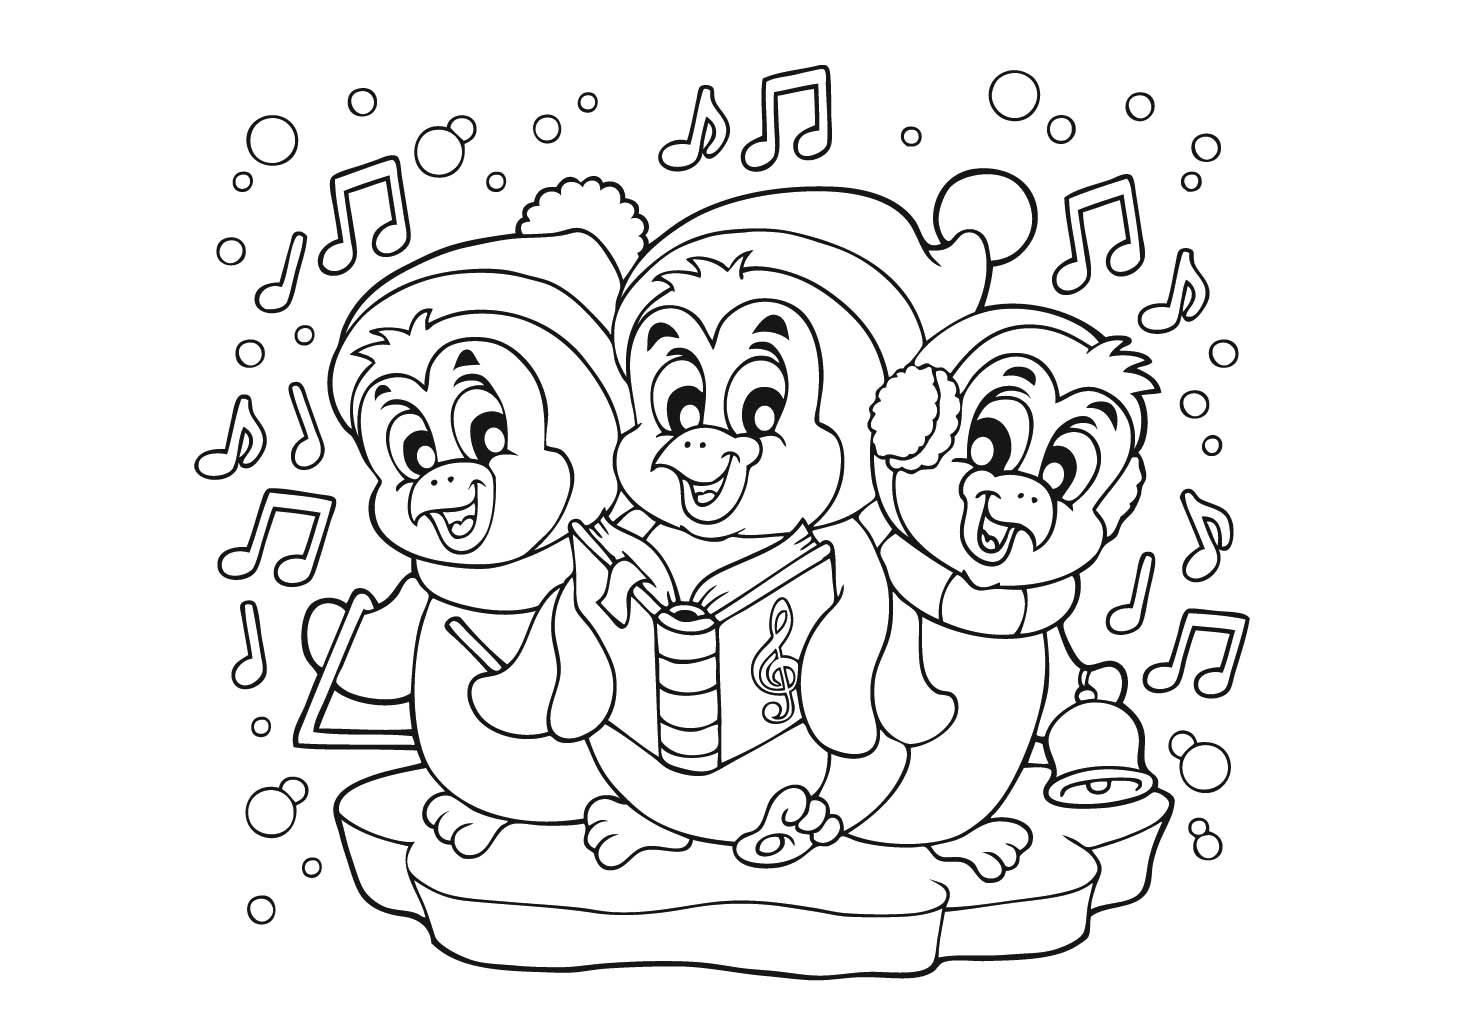 cheer coloring pages - create christmas cheer printer